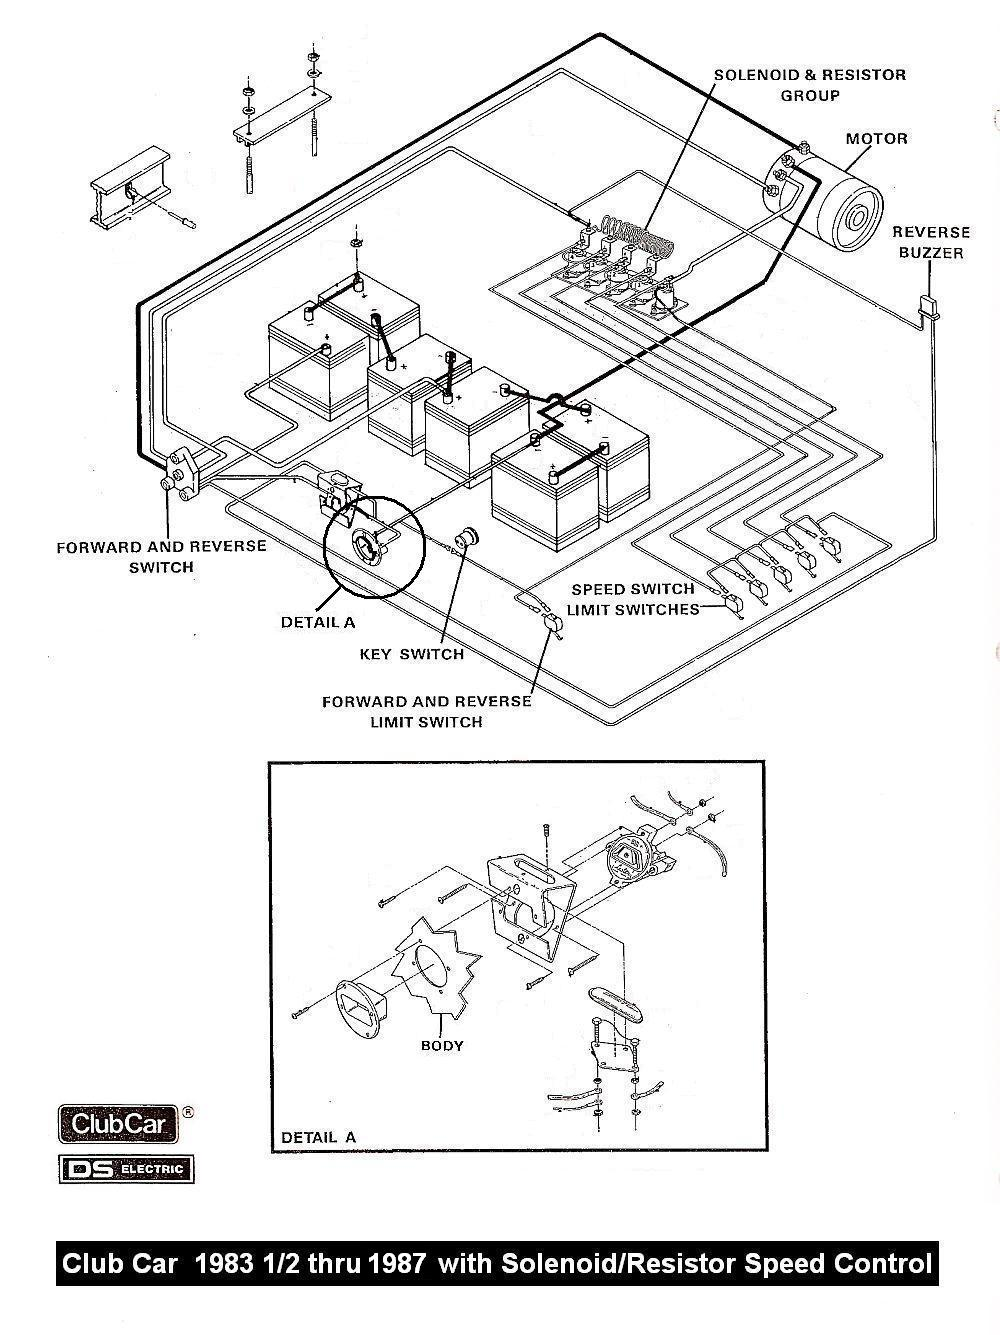 Wiring Diagram For 1983 12 To 1987 Club Car With Resistor And